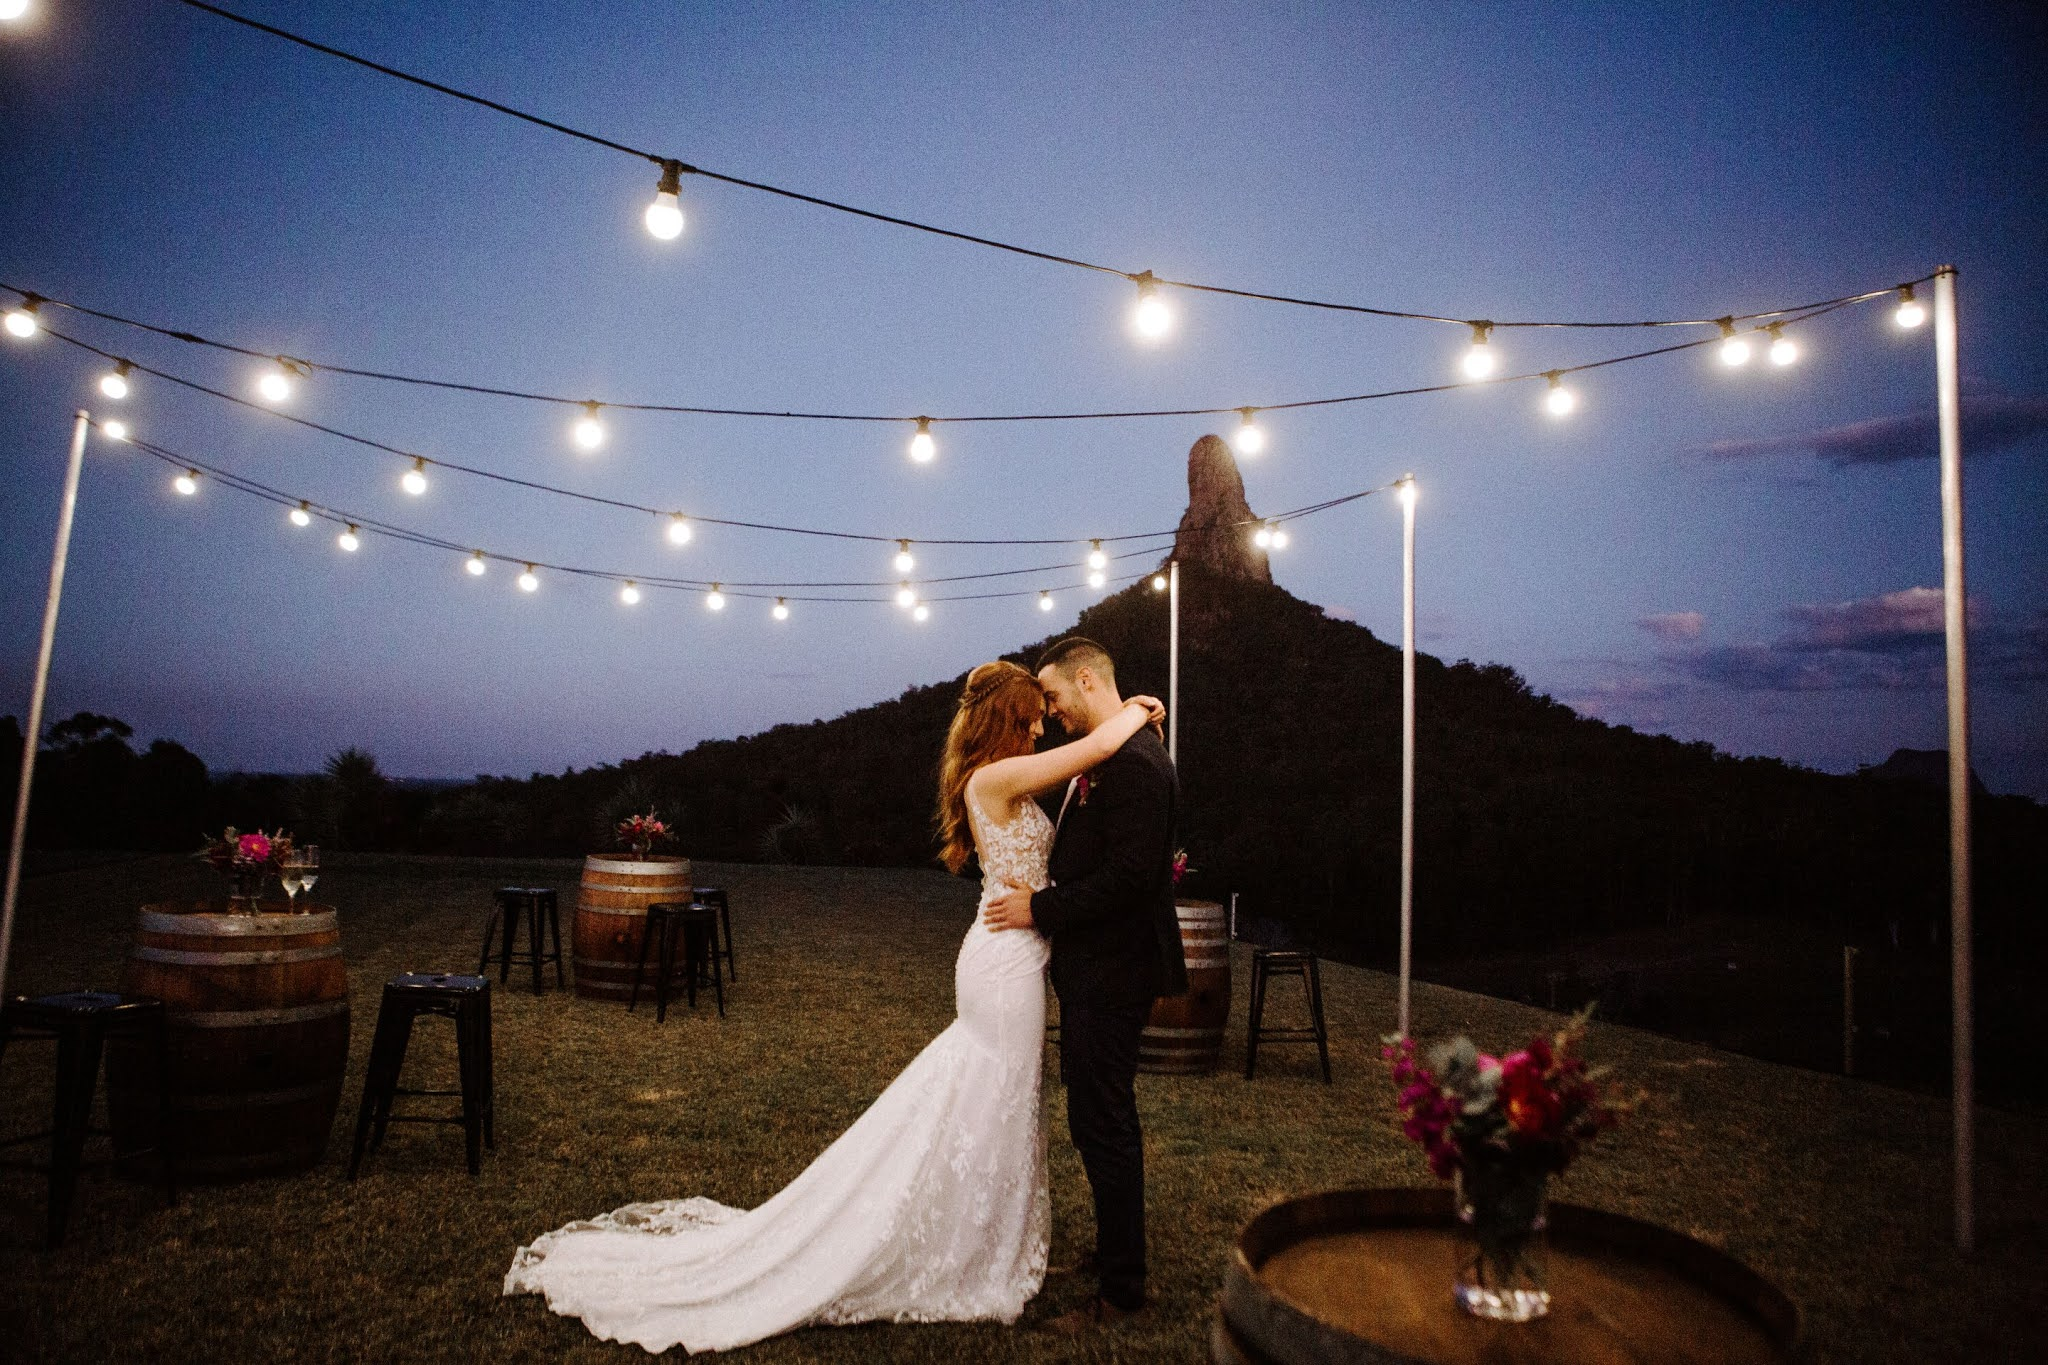 Kayla Temple Photography festoon lighting bridal gowns tablestyling